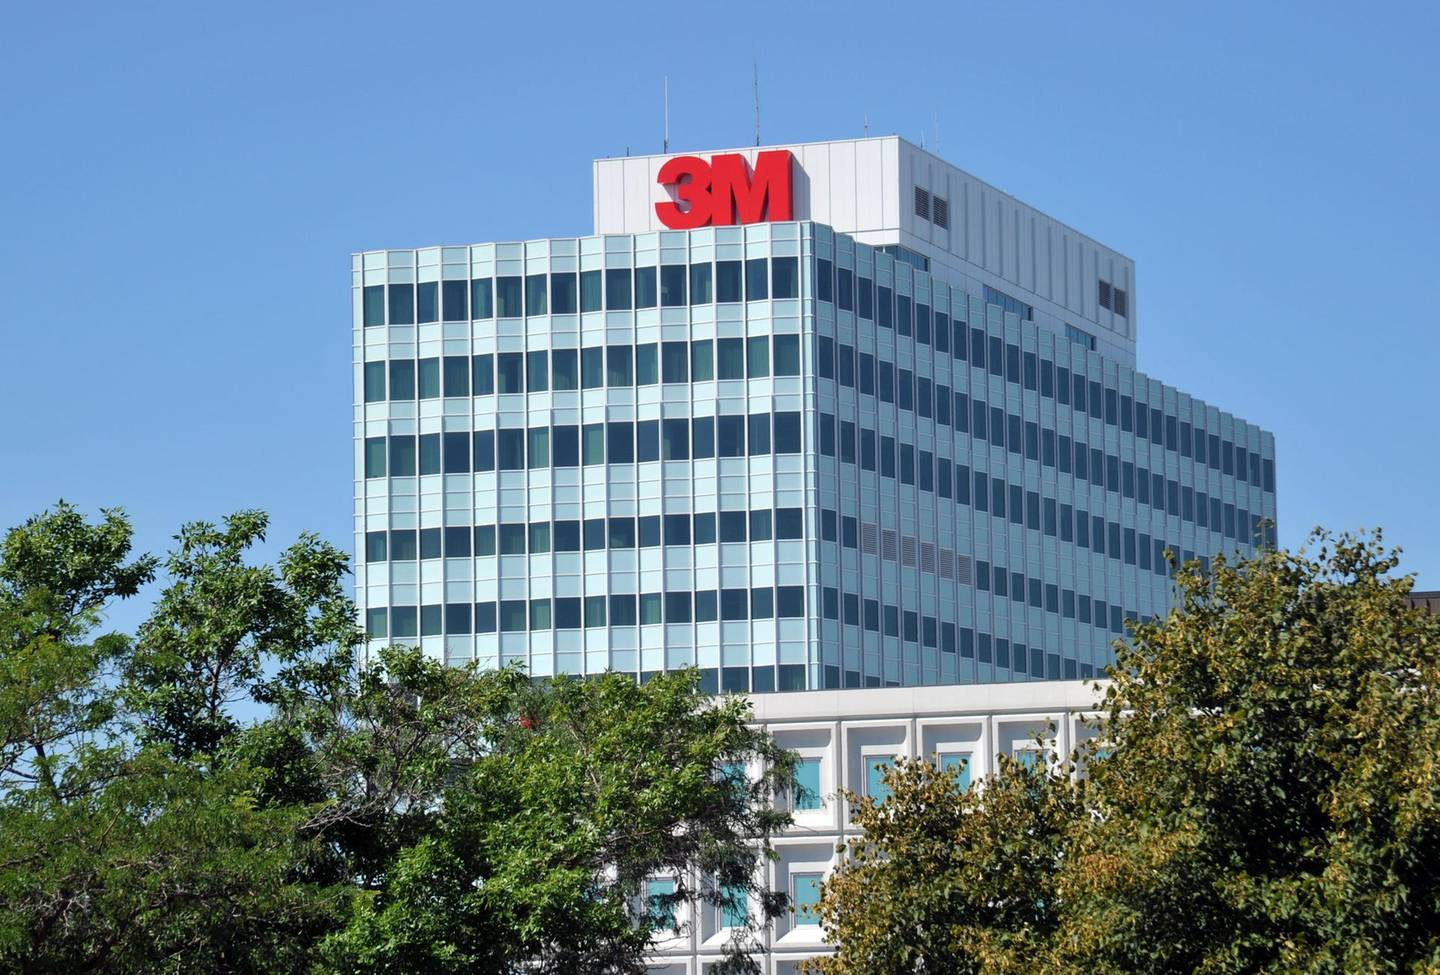 (FILES) In this file photo taken on August 25, 2011, the 3M headquarters in Woodbury, Minnesota. 3M on April 3, 2020, defended its handling of production and distribution of desperately needed masks to combat the coronavirus pandemic after US President Donald Trump threatened to punish the US manufacturing giant  for not shifting all distribution back home. / AFP / KAREN BLEIER